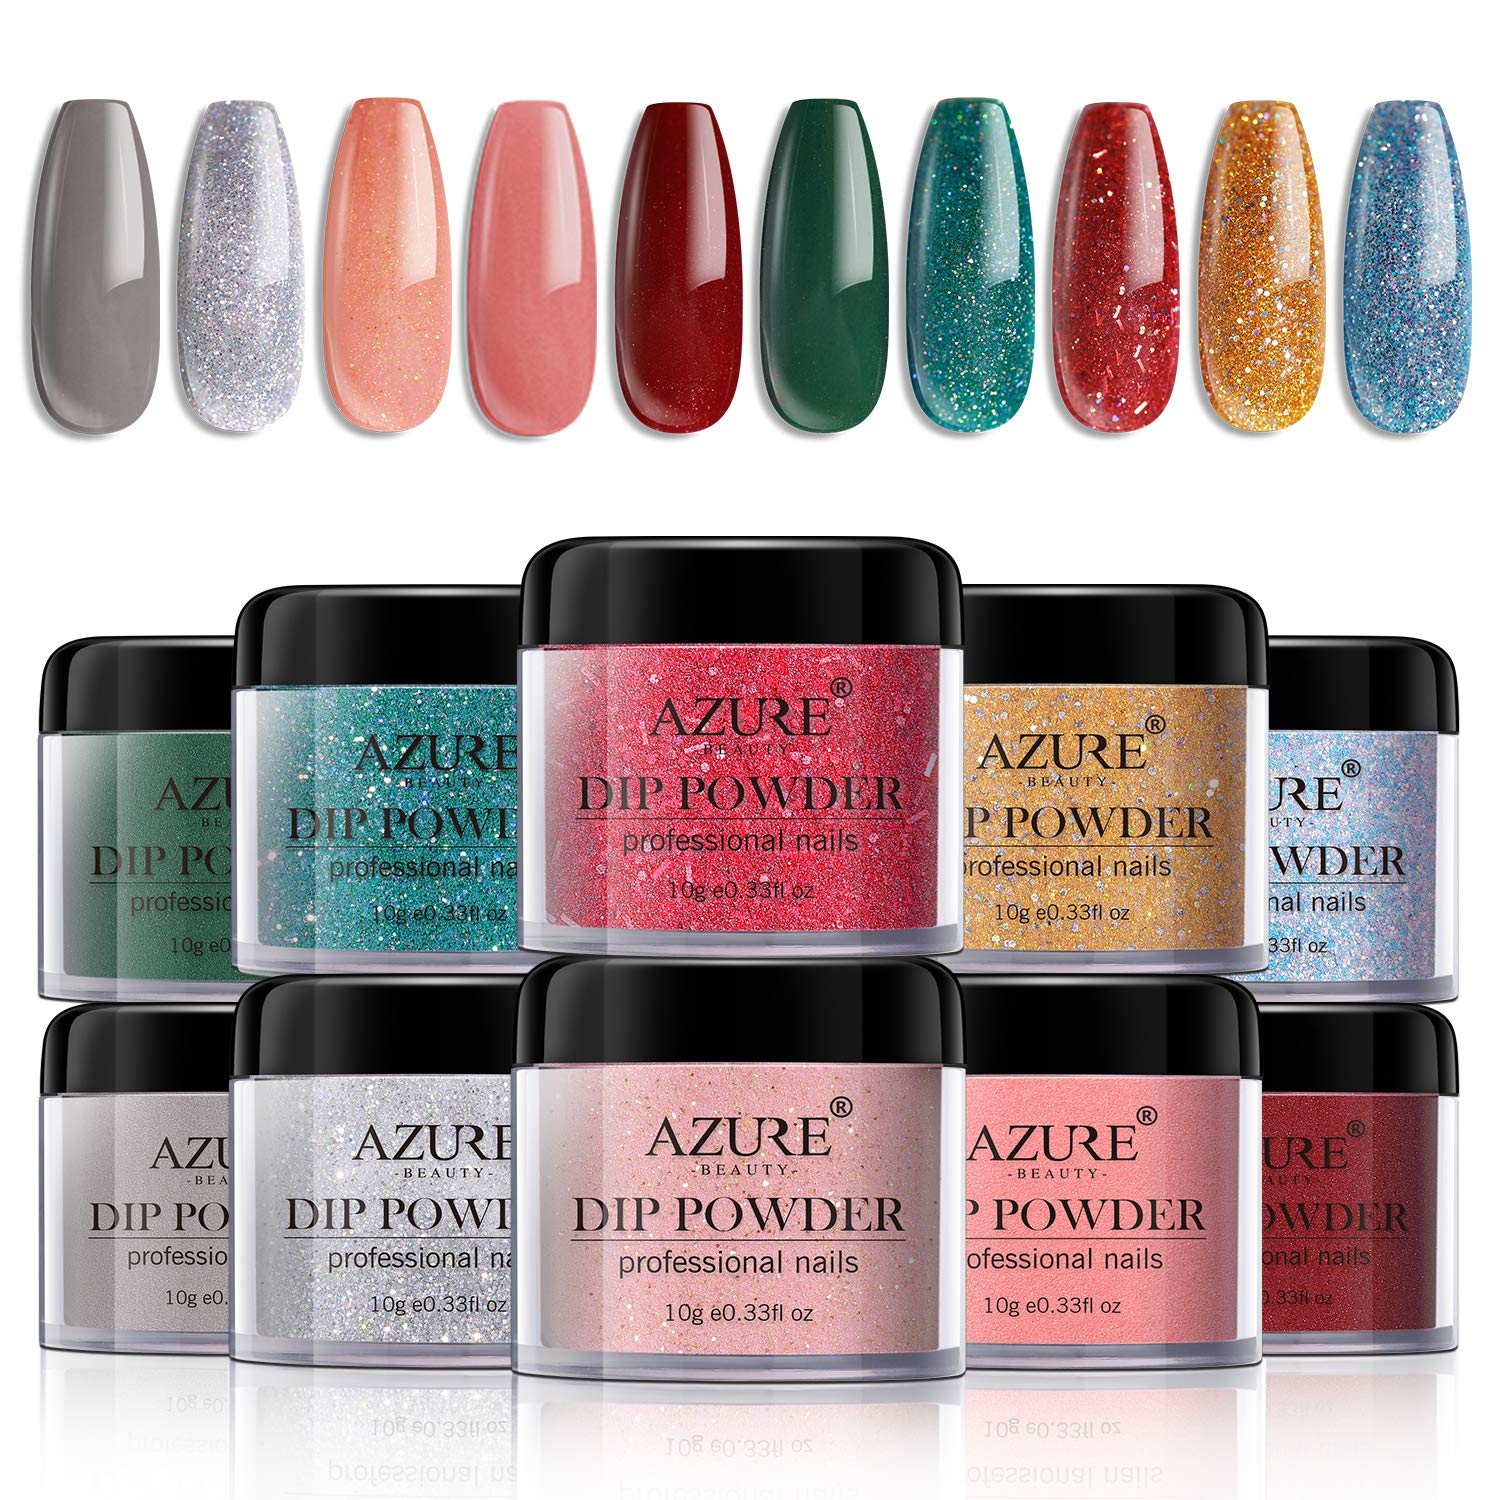 Dipping Nail Powder Set - 10 Colors Dip Powders Nails Set for Christmas with Gift Box No UV/LED Nail Lamp Needed for French Nail Manicure Nail Art by AZUREBEAUTY